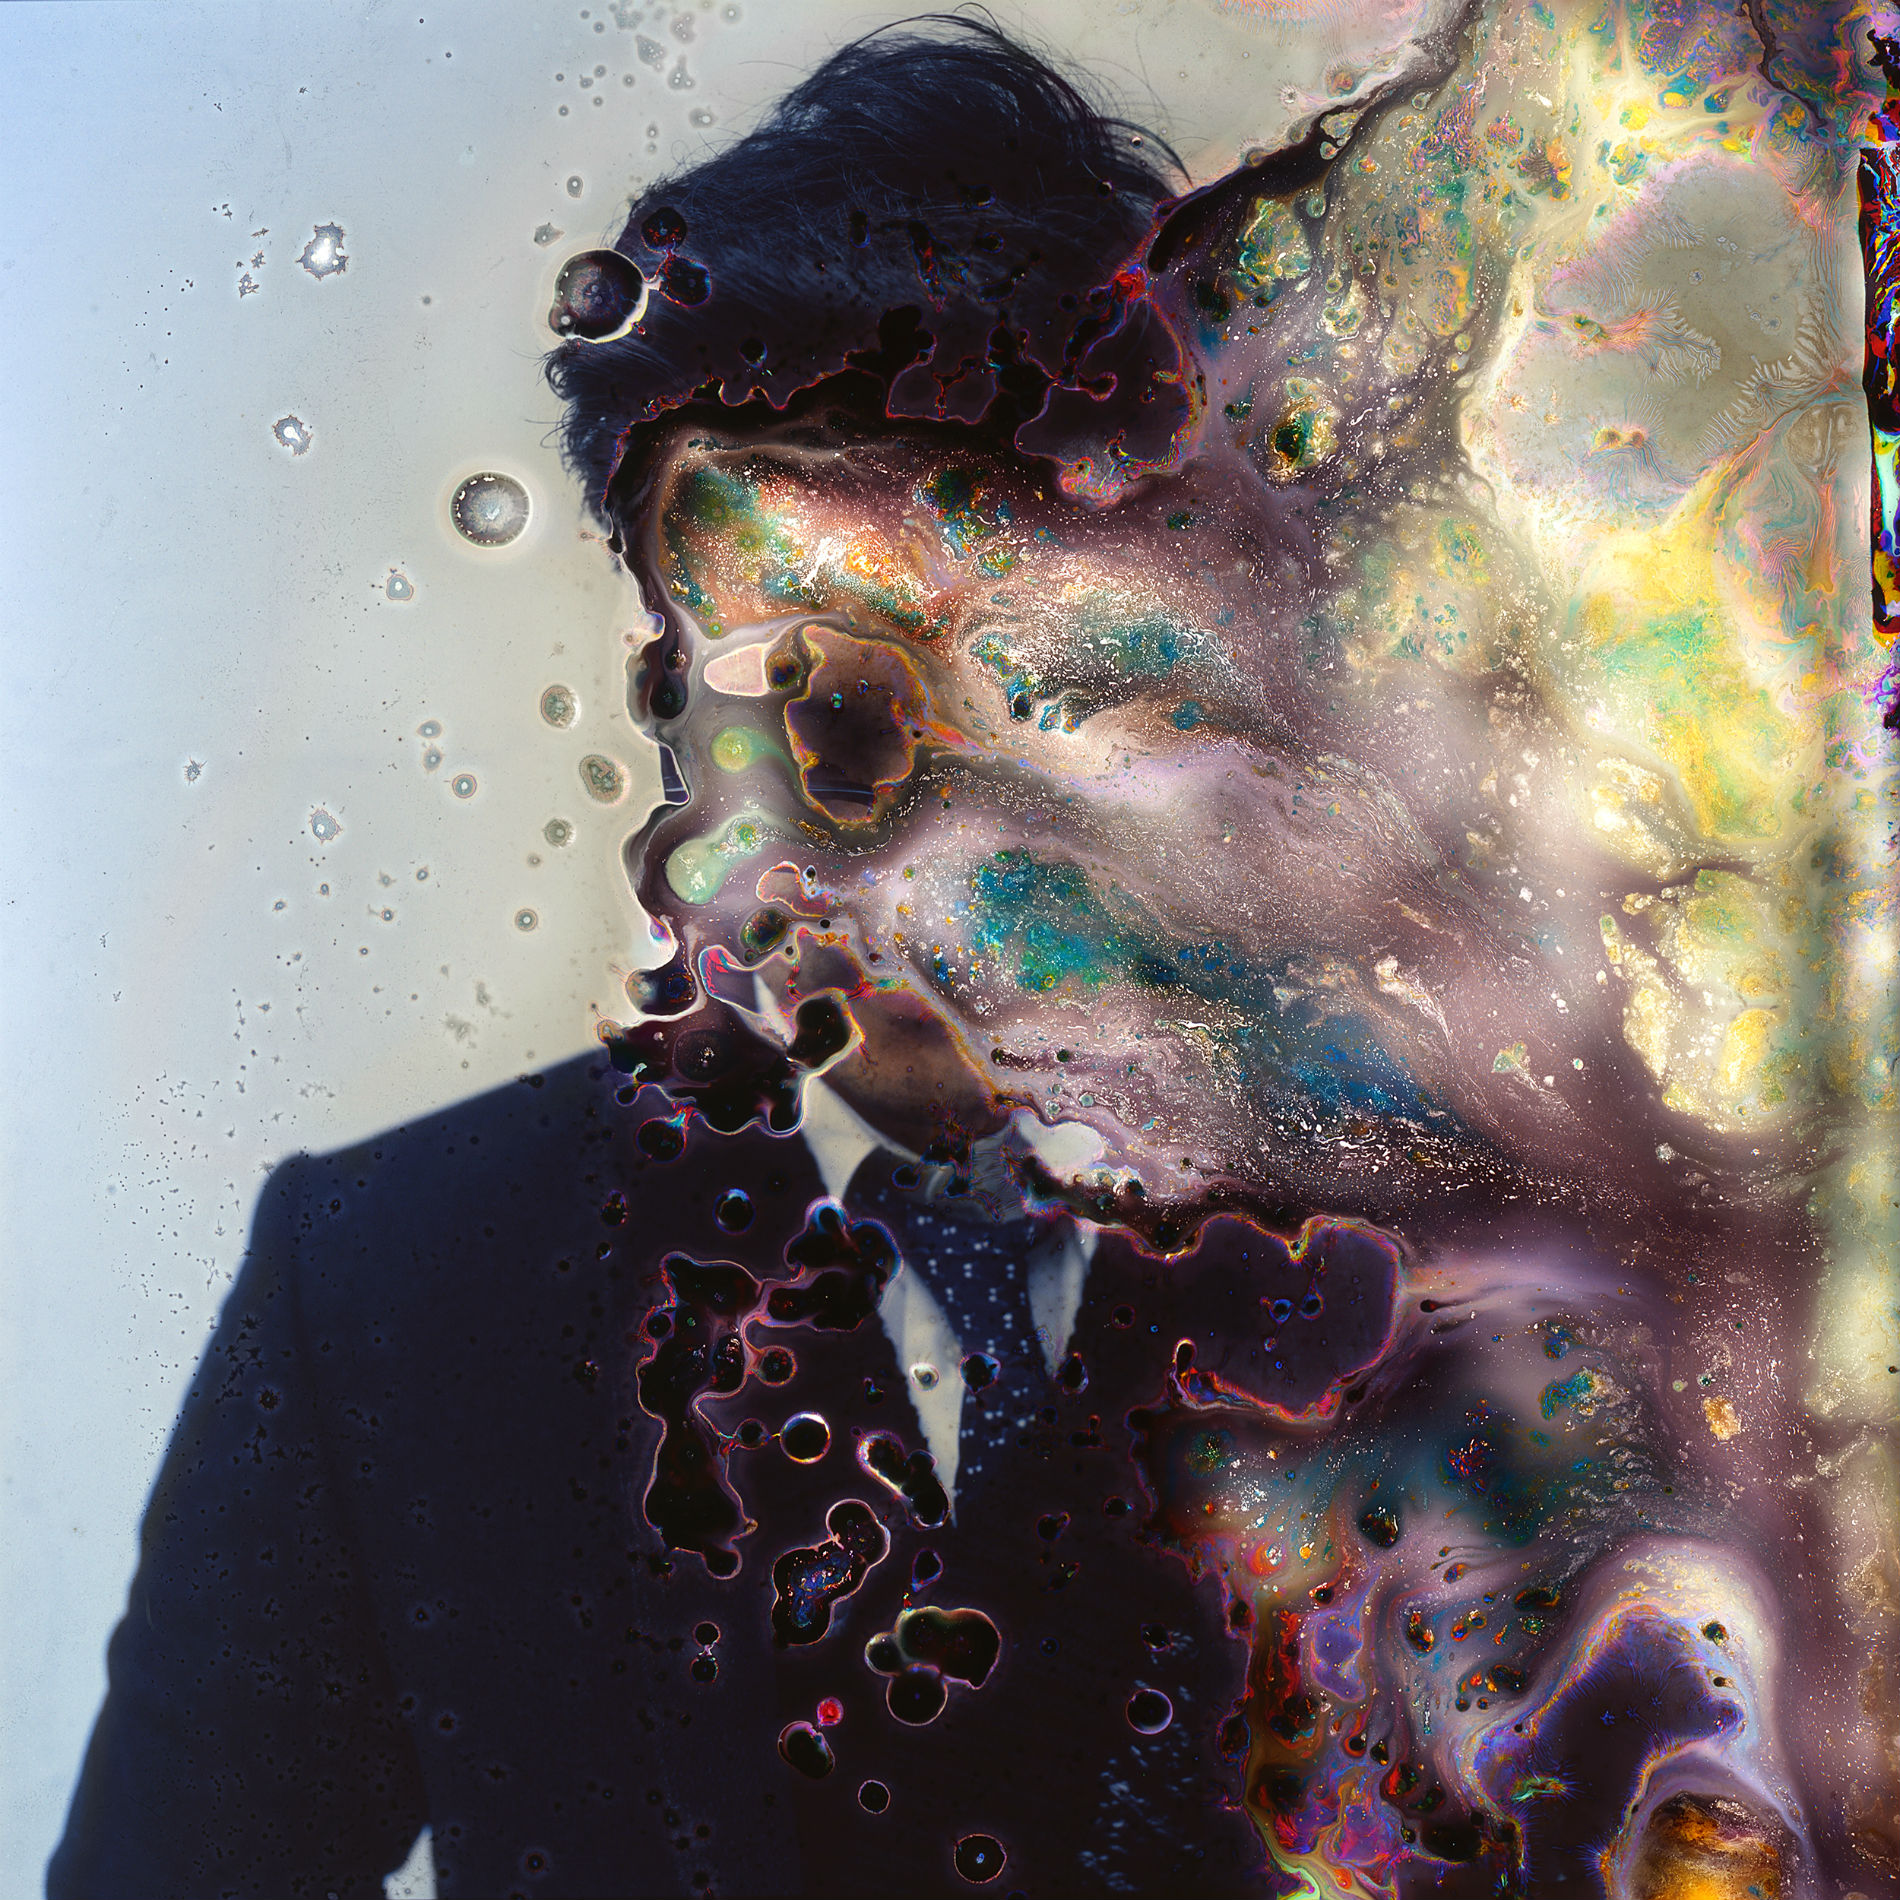 Chemical Portraits by Seung-Hwan Oh